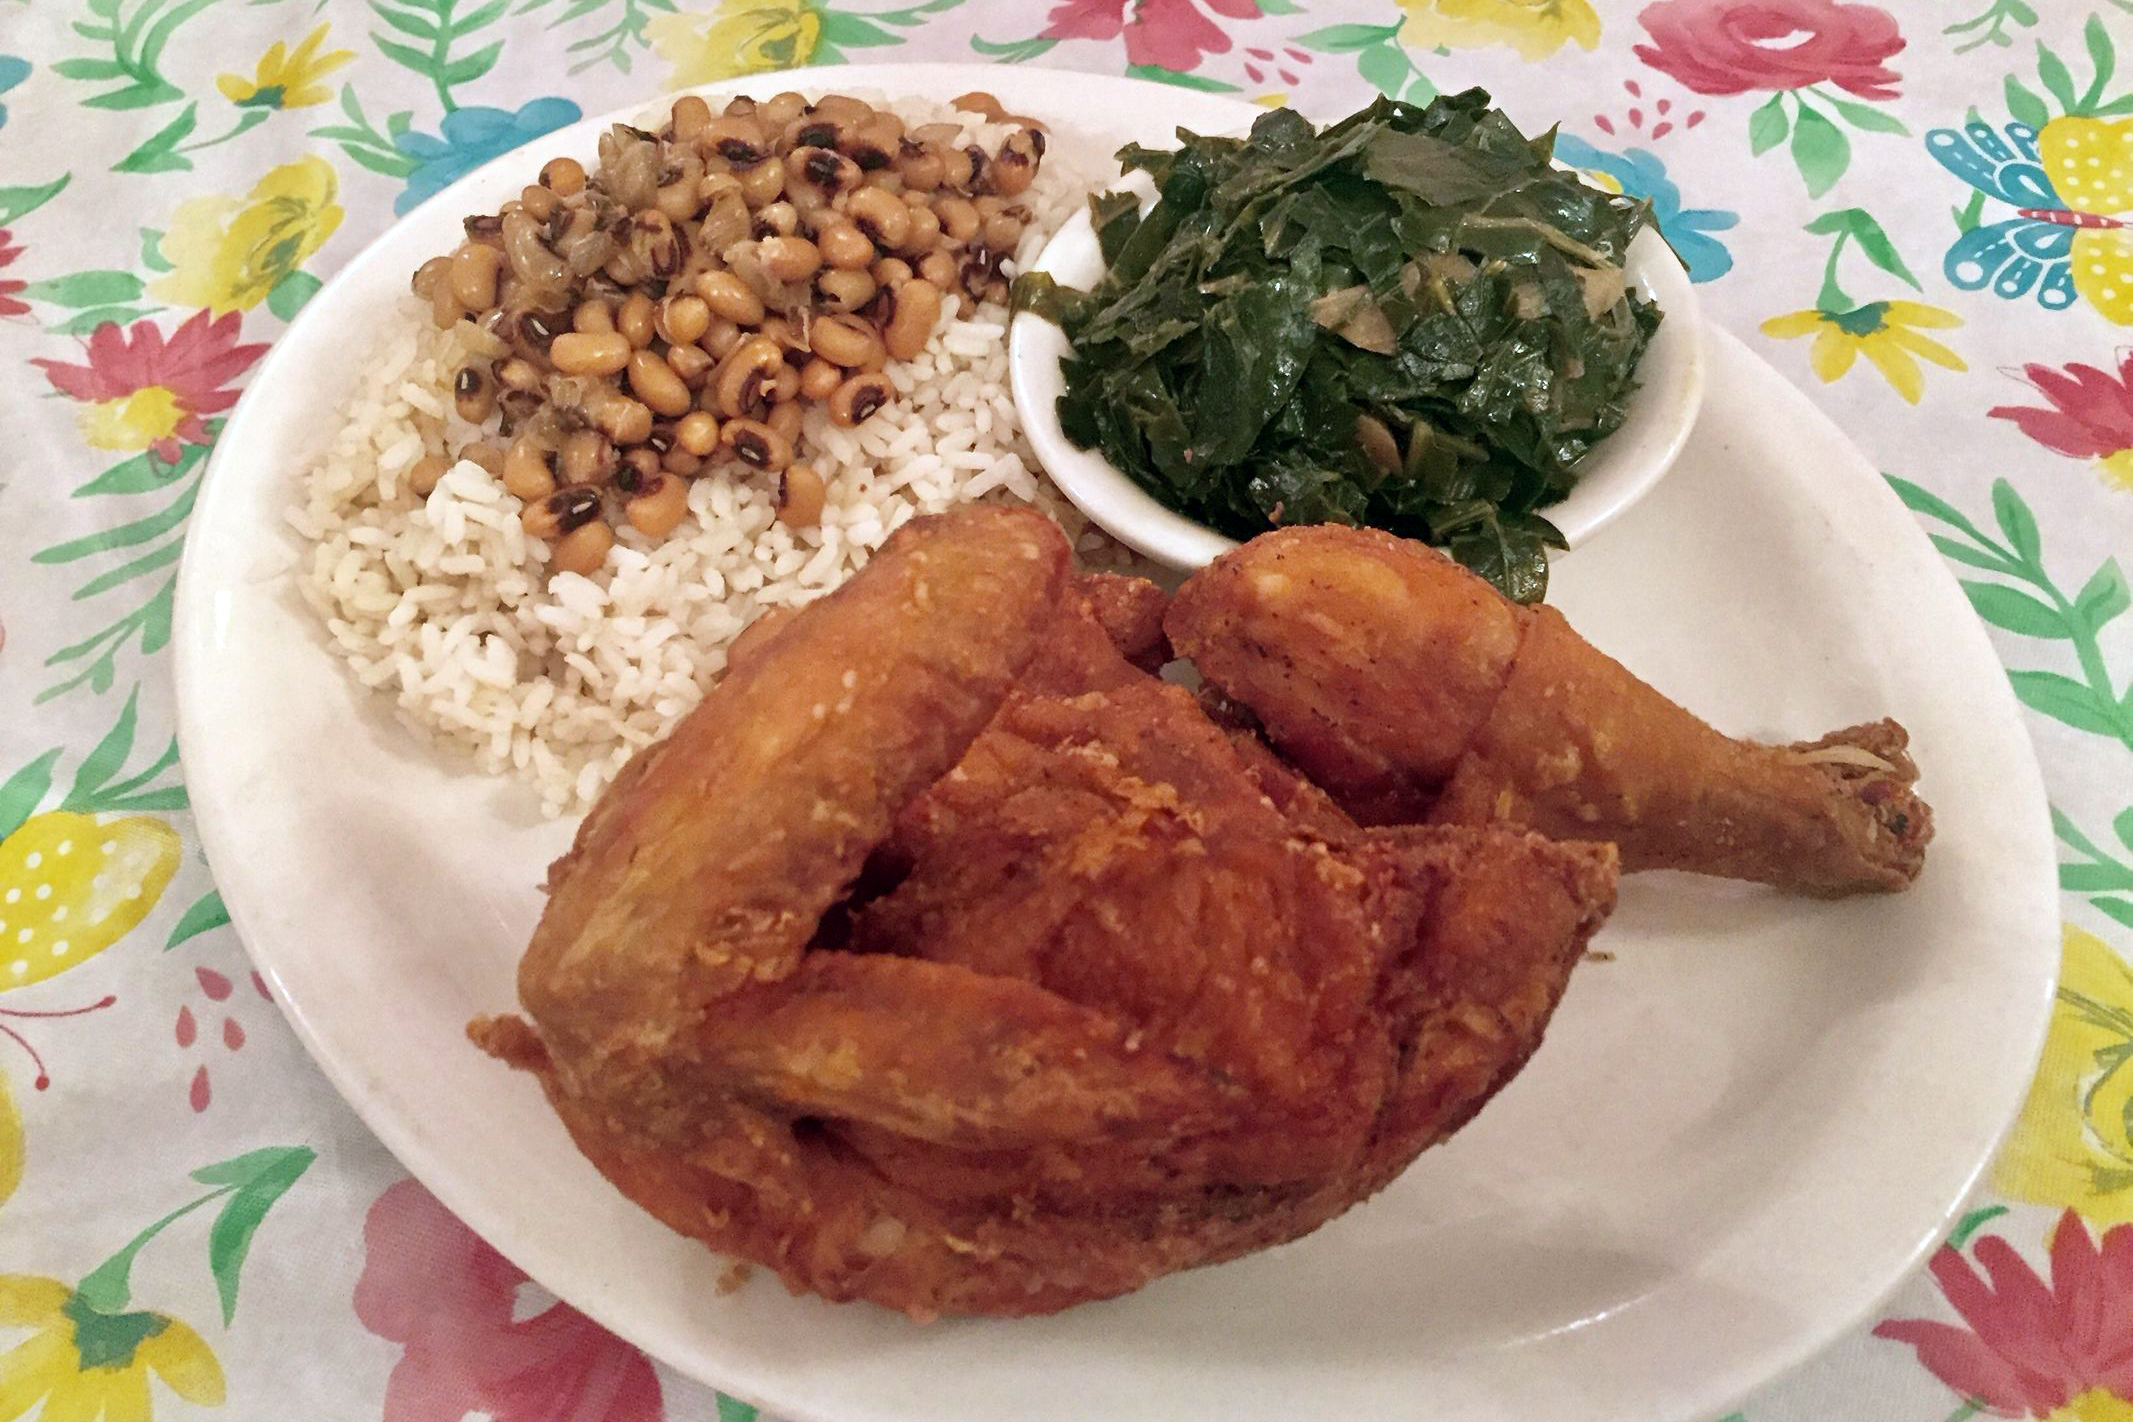 The fried chicken platter from Corinne's Place in Camden - still one of the region's best soul food kitchens. (CRAIG LABAN / Staff)